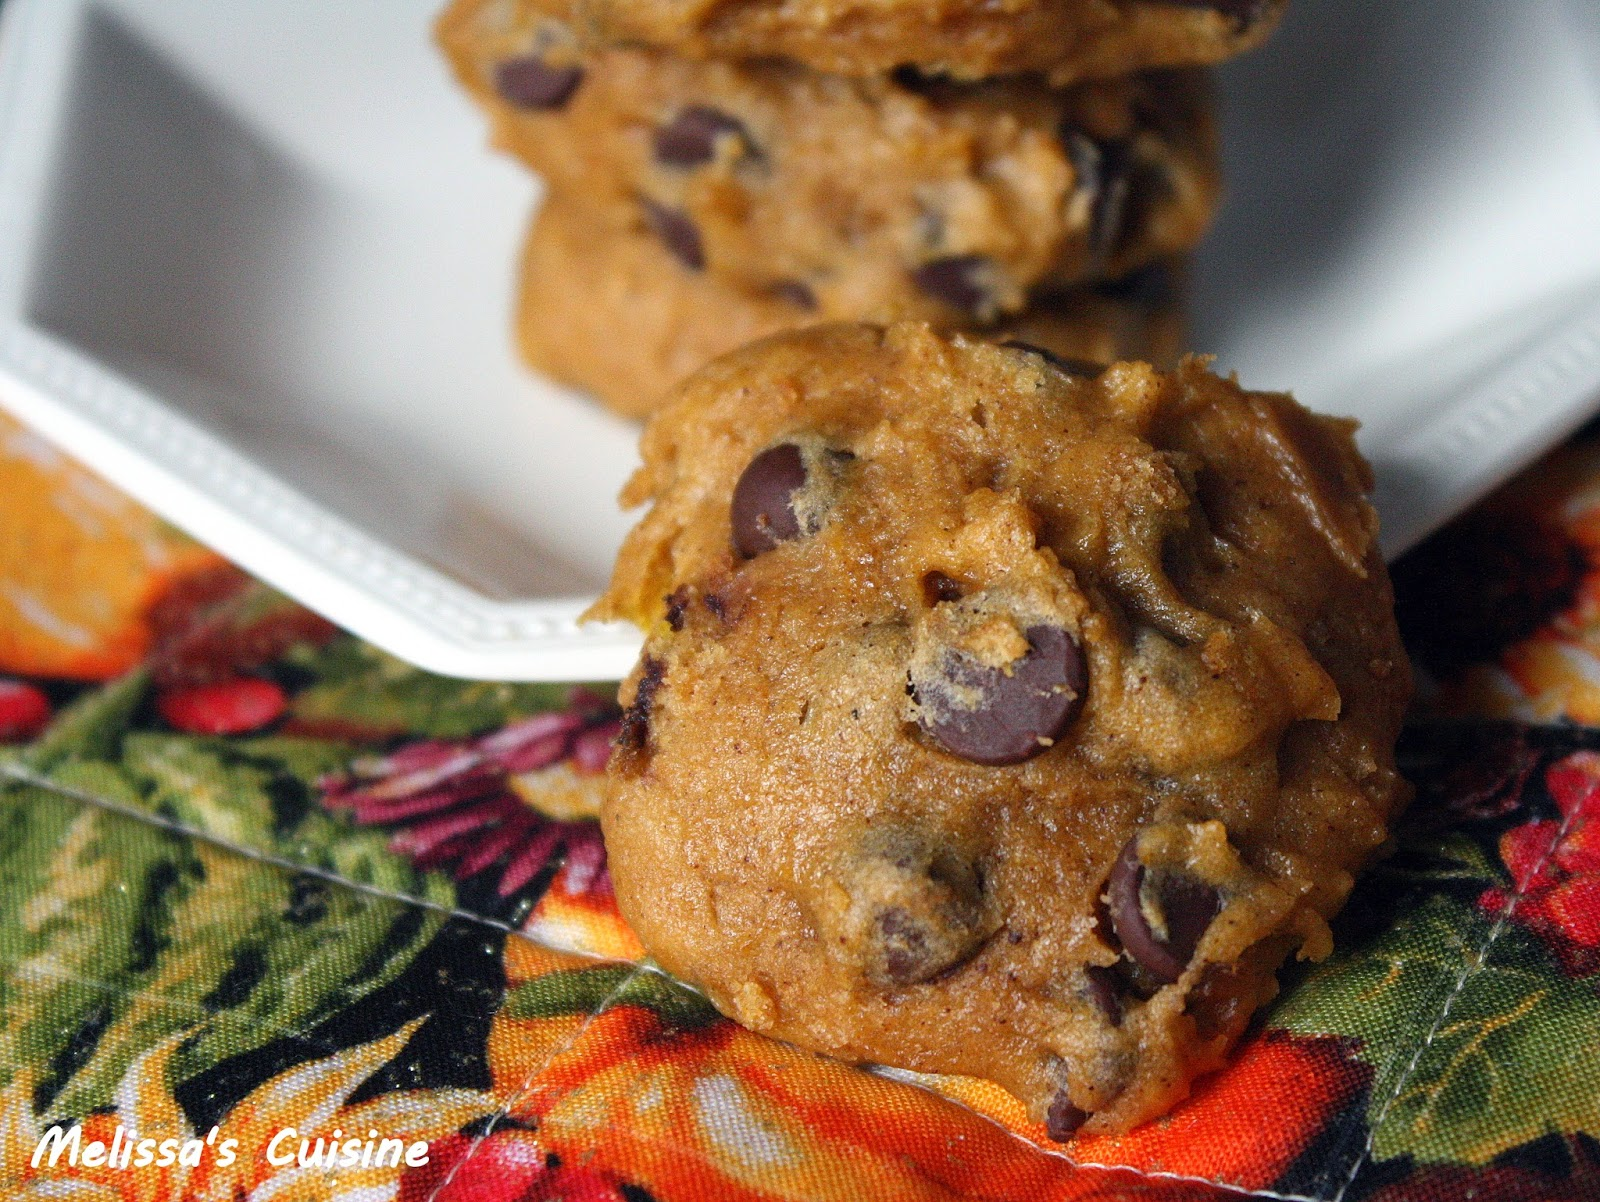 Melissa's Cuisine: Pumpkin Chocolate Chip Cookies